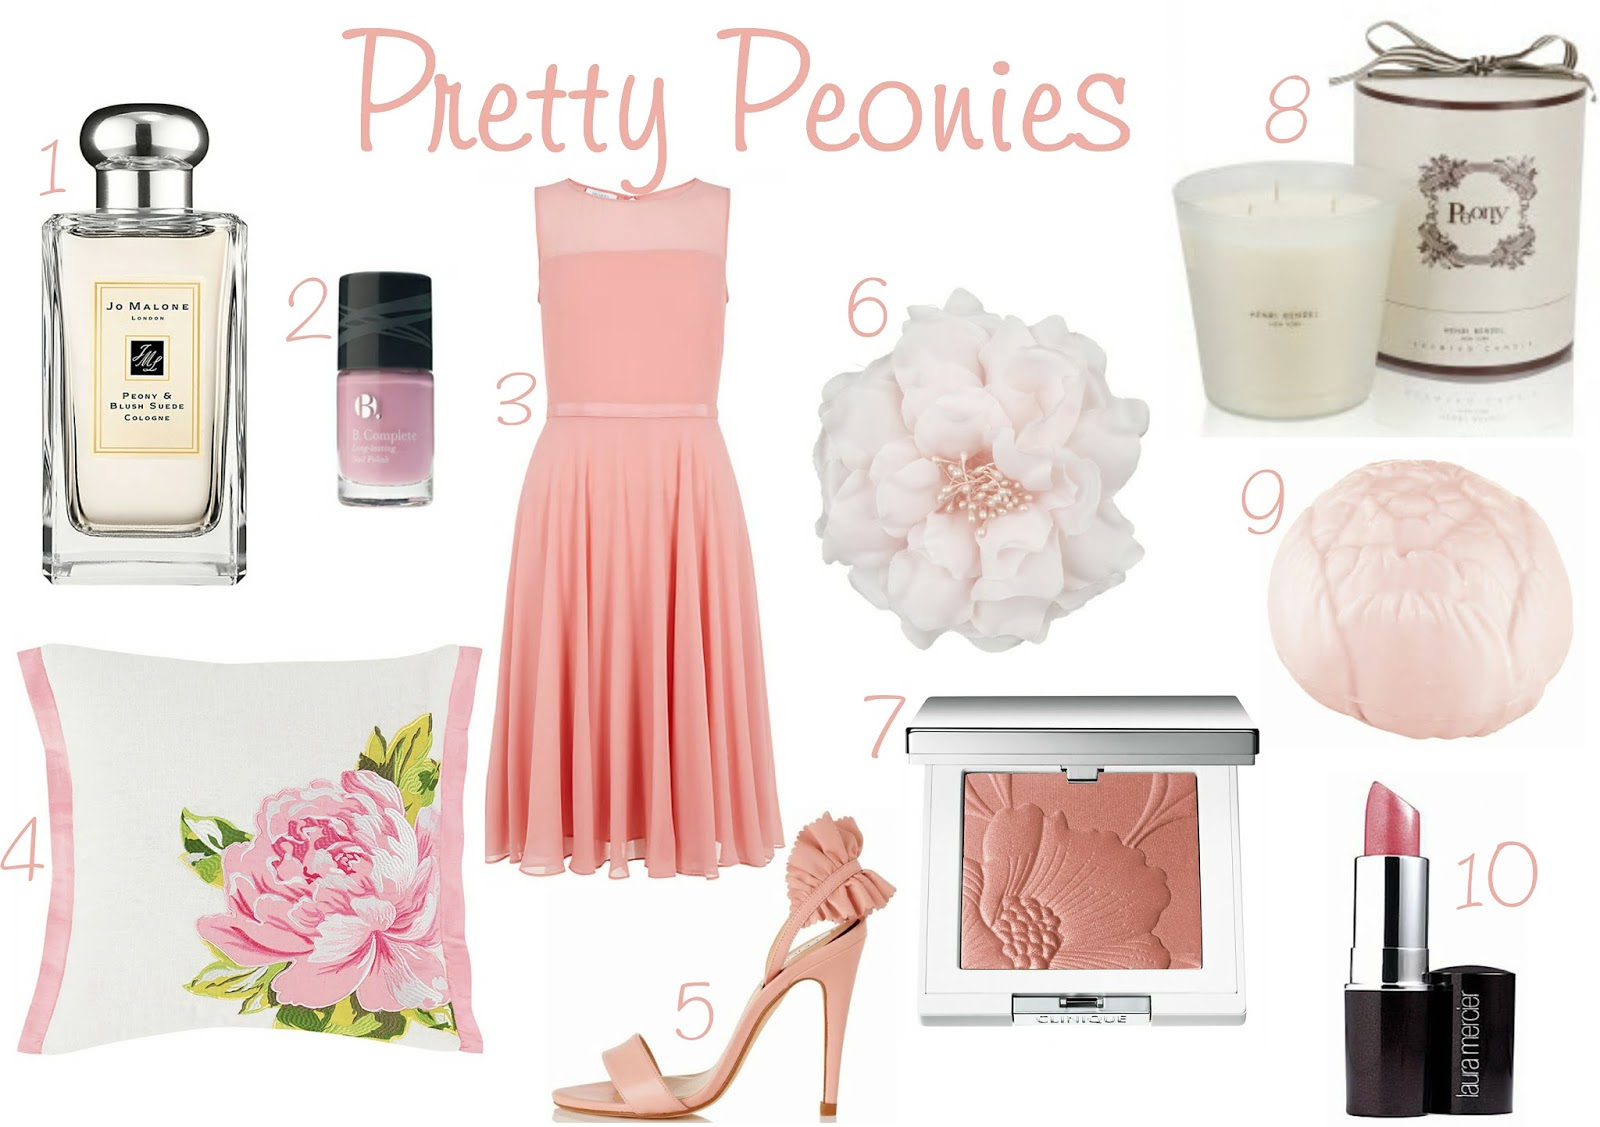 Pretty Peonies - Shop the Look